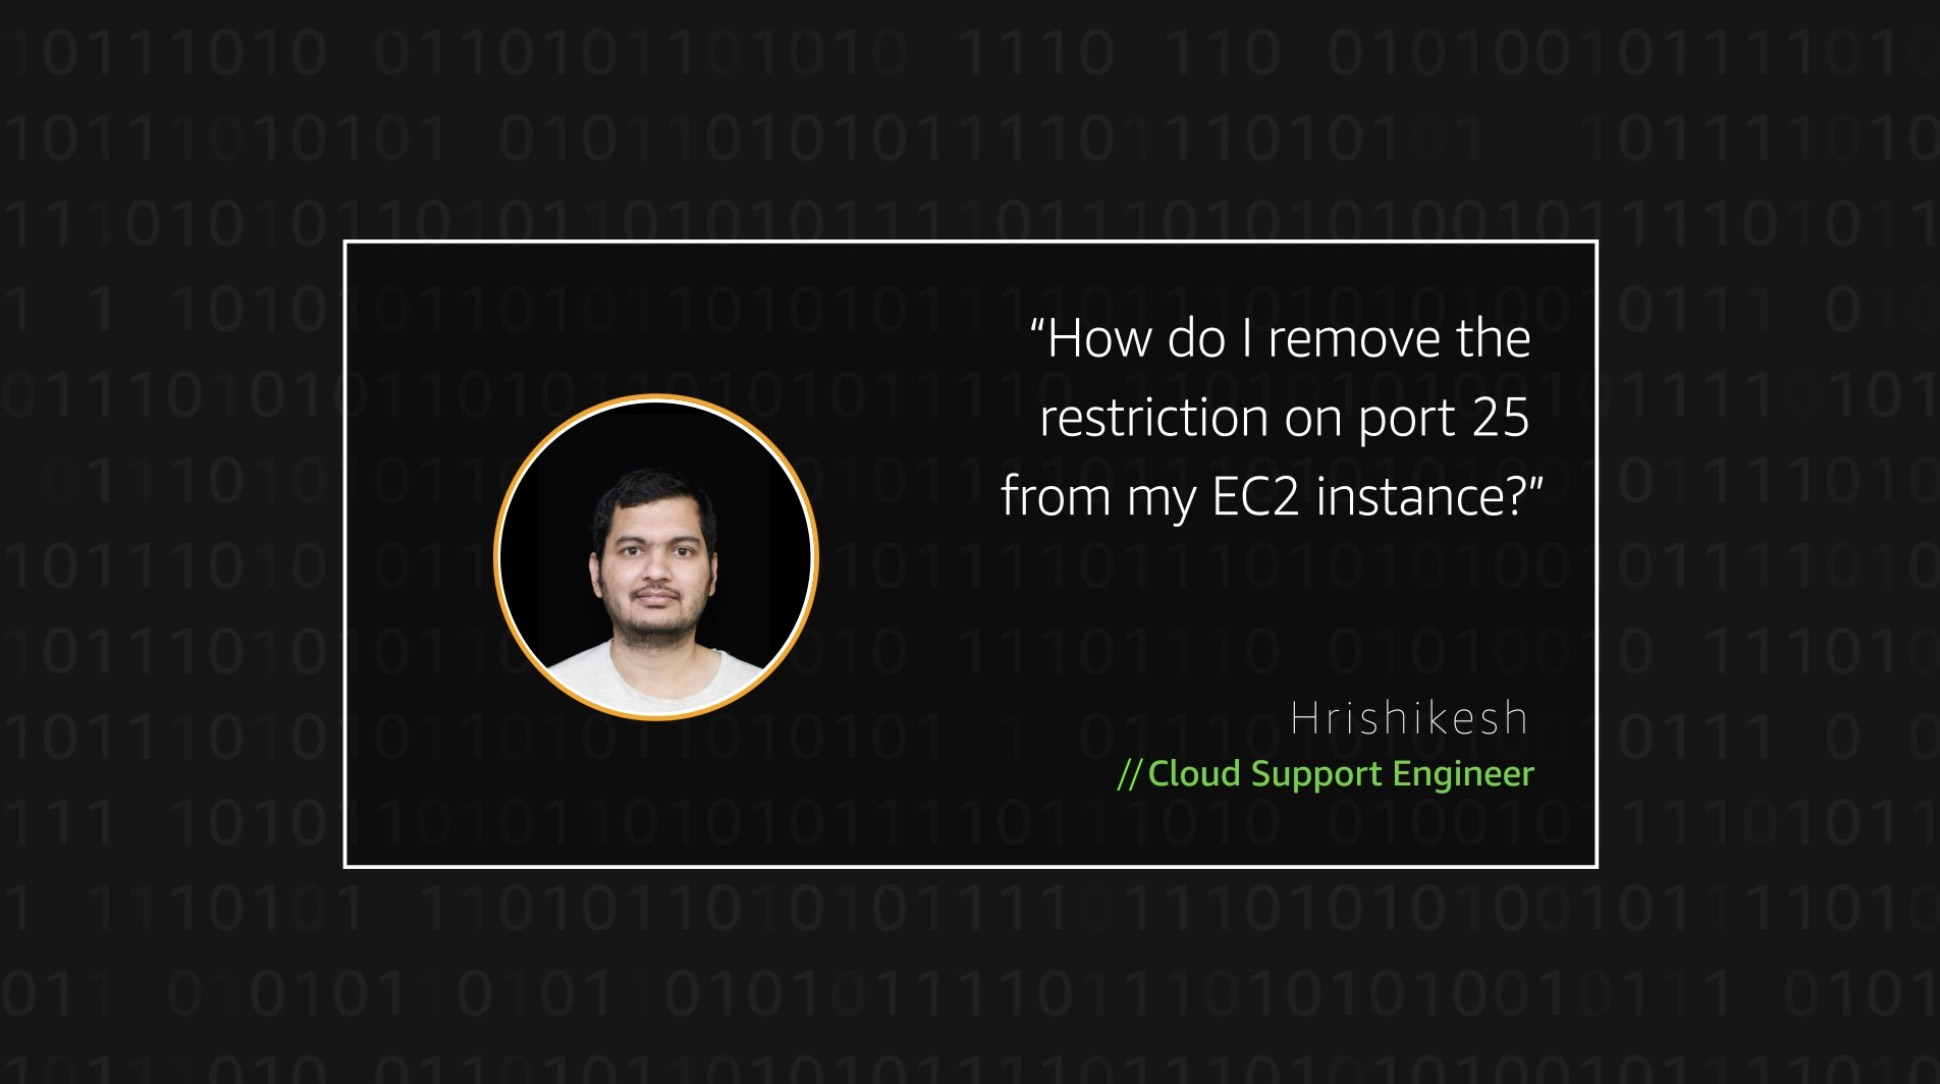 Watch Hrishikesh's video to learn more